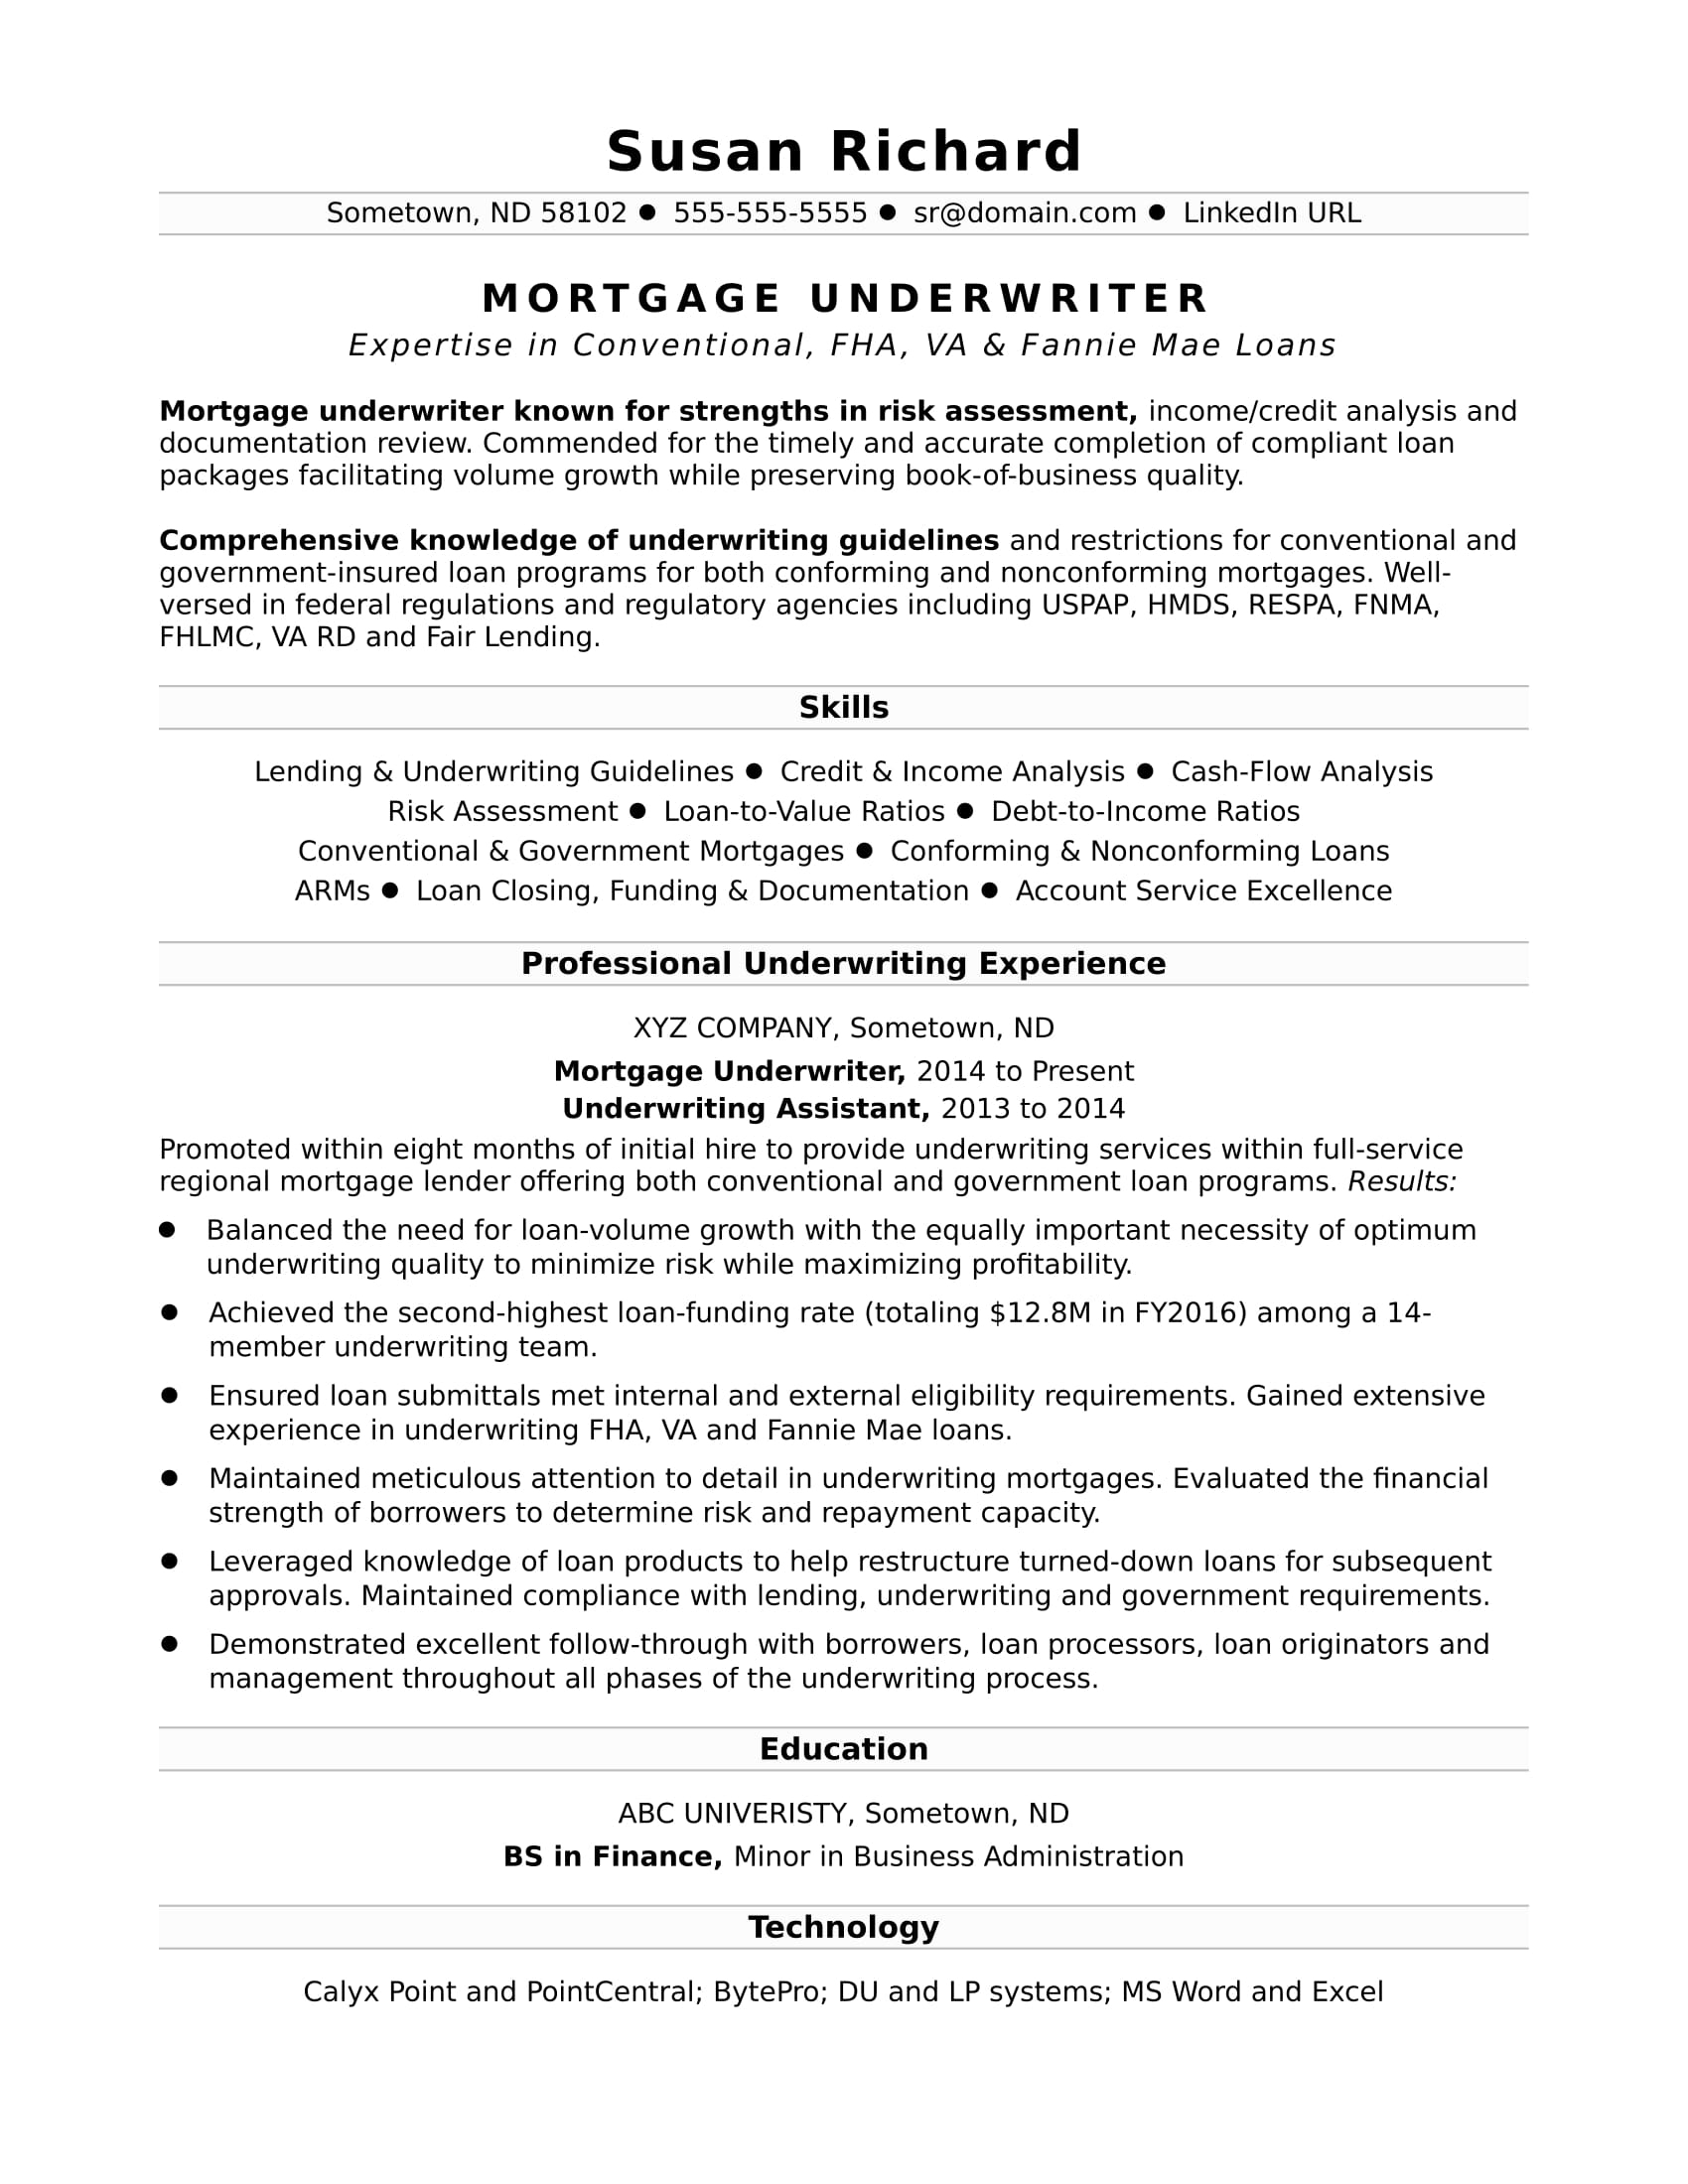 mortgage protection letter template example-Sample Resume for a Mortgage Underwriter 12-r